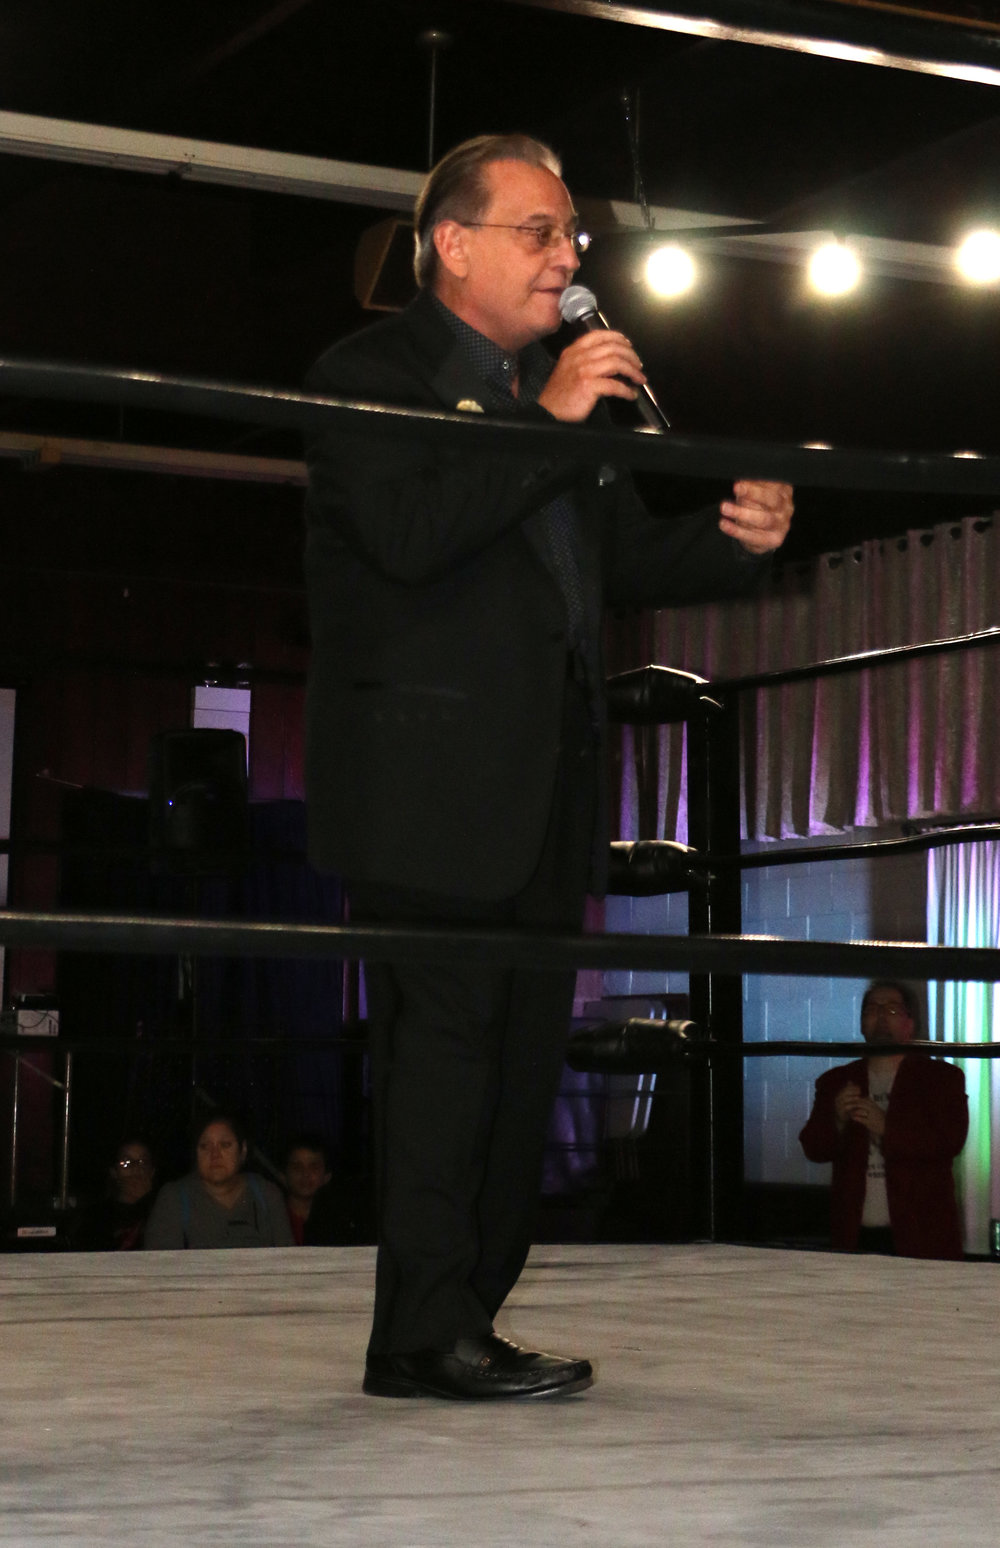 Legendary ring announcer Gary Michael Cappetta gets ready to introduce the competitors for the Jay Bradley-Steve Michaels match.